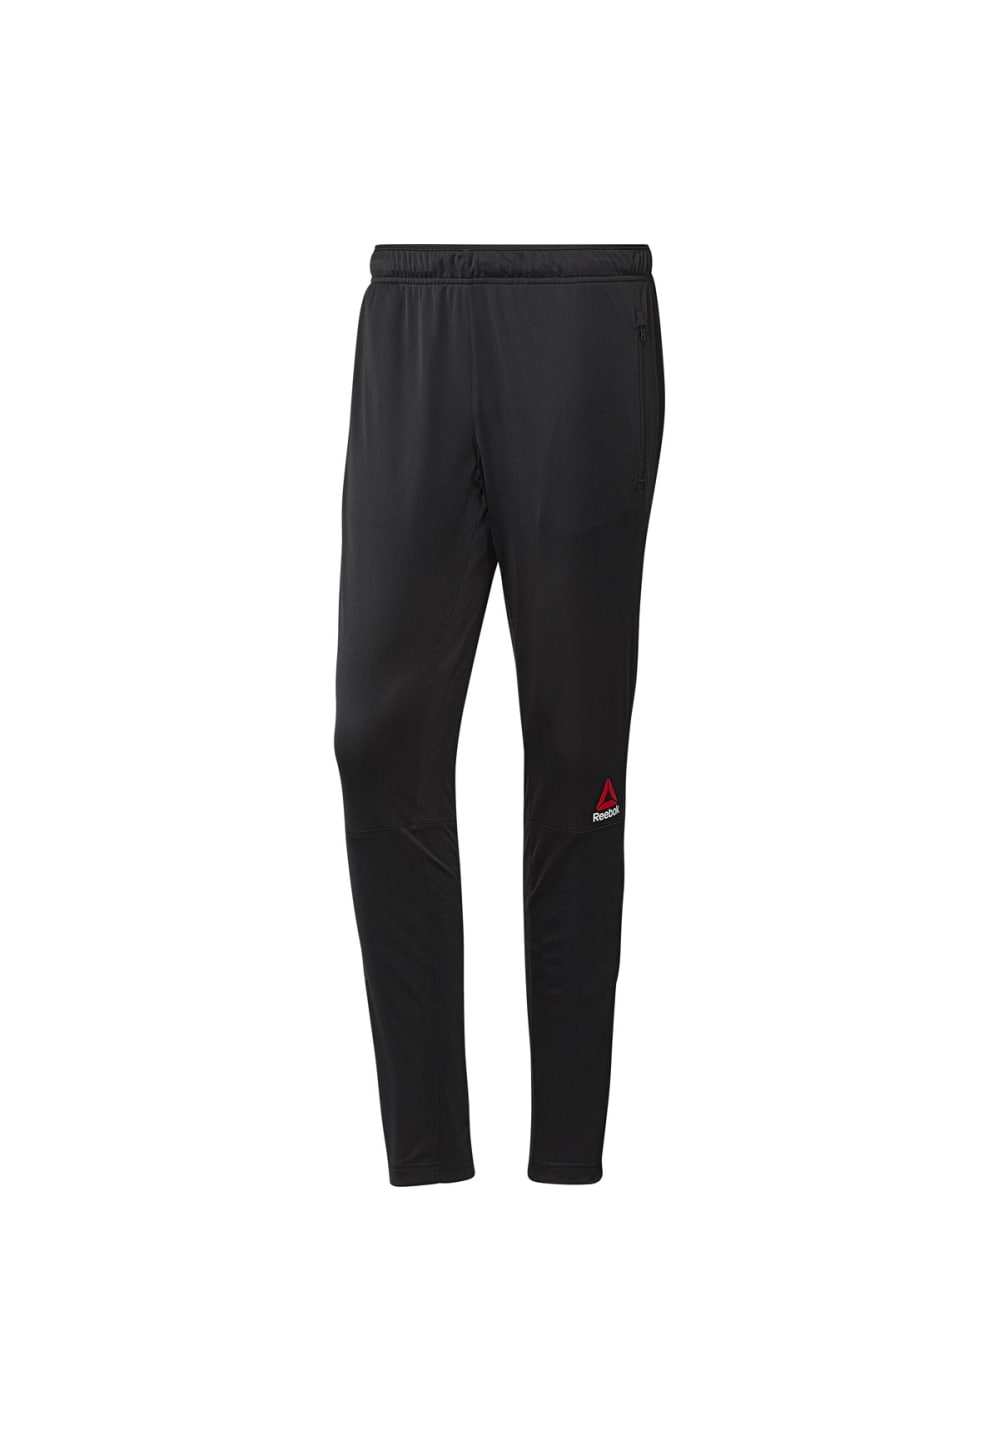 Reebok Knit Trackster Hommes Pantalons course